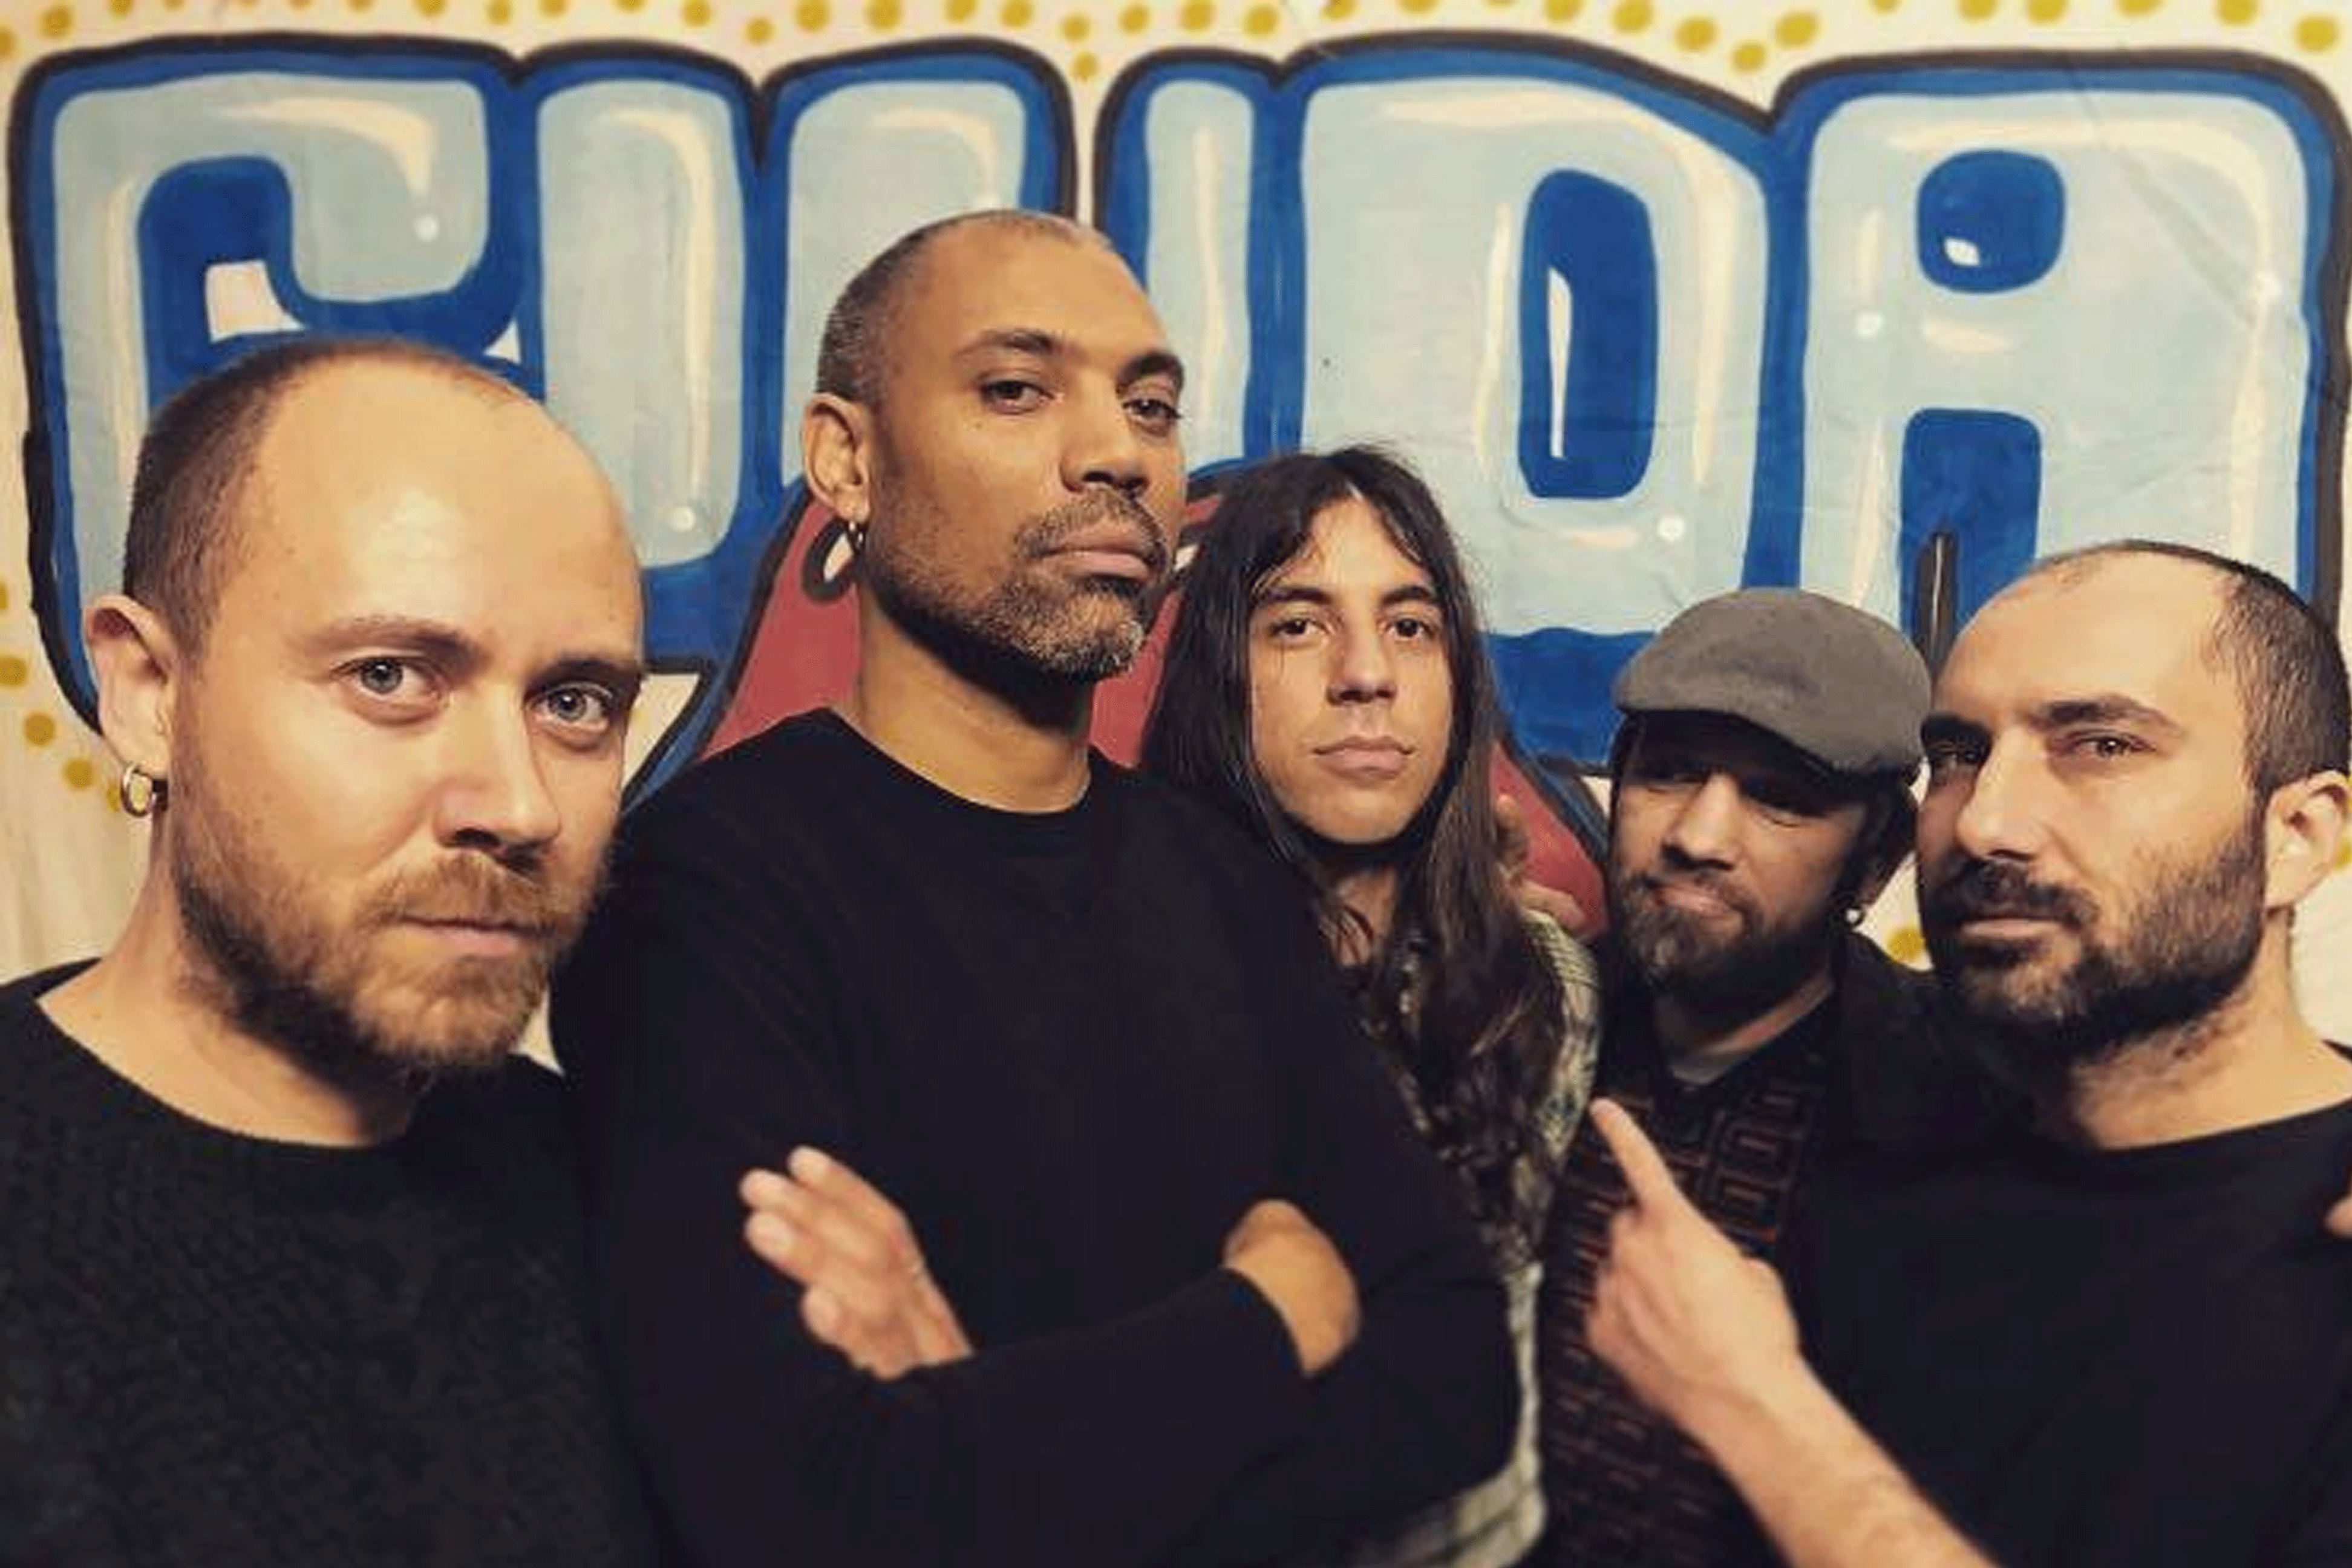 Giuda Rock & roll band - Mike-Guitar / Tenda-Vox / Alex-Drum / Danilo-Bass / Lorenzo-Guitar